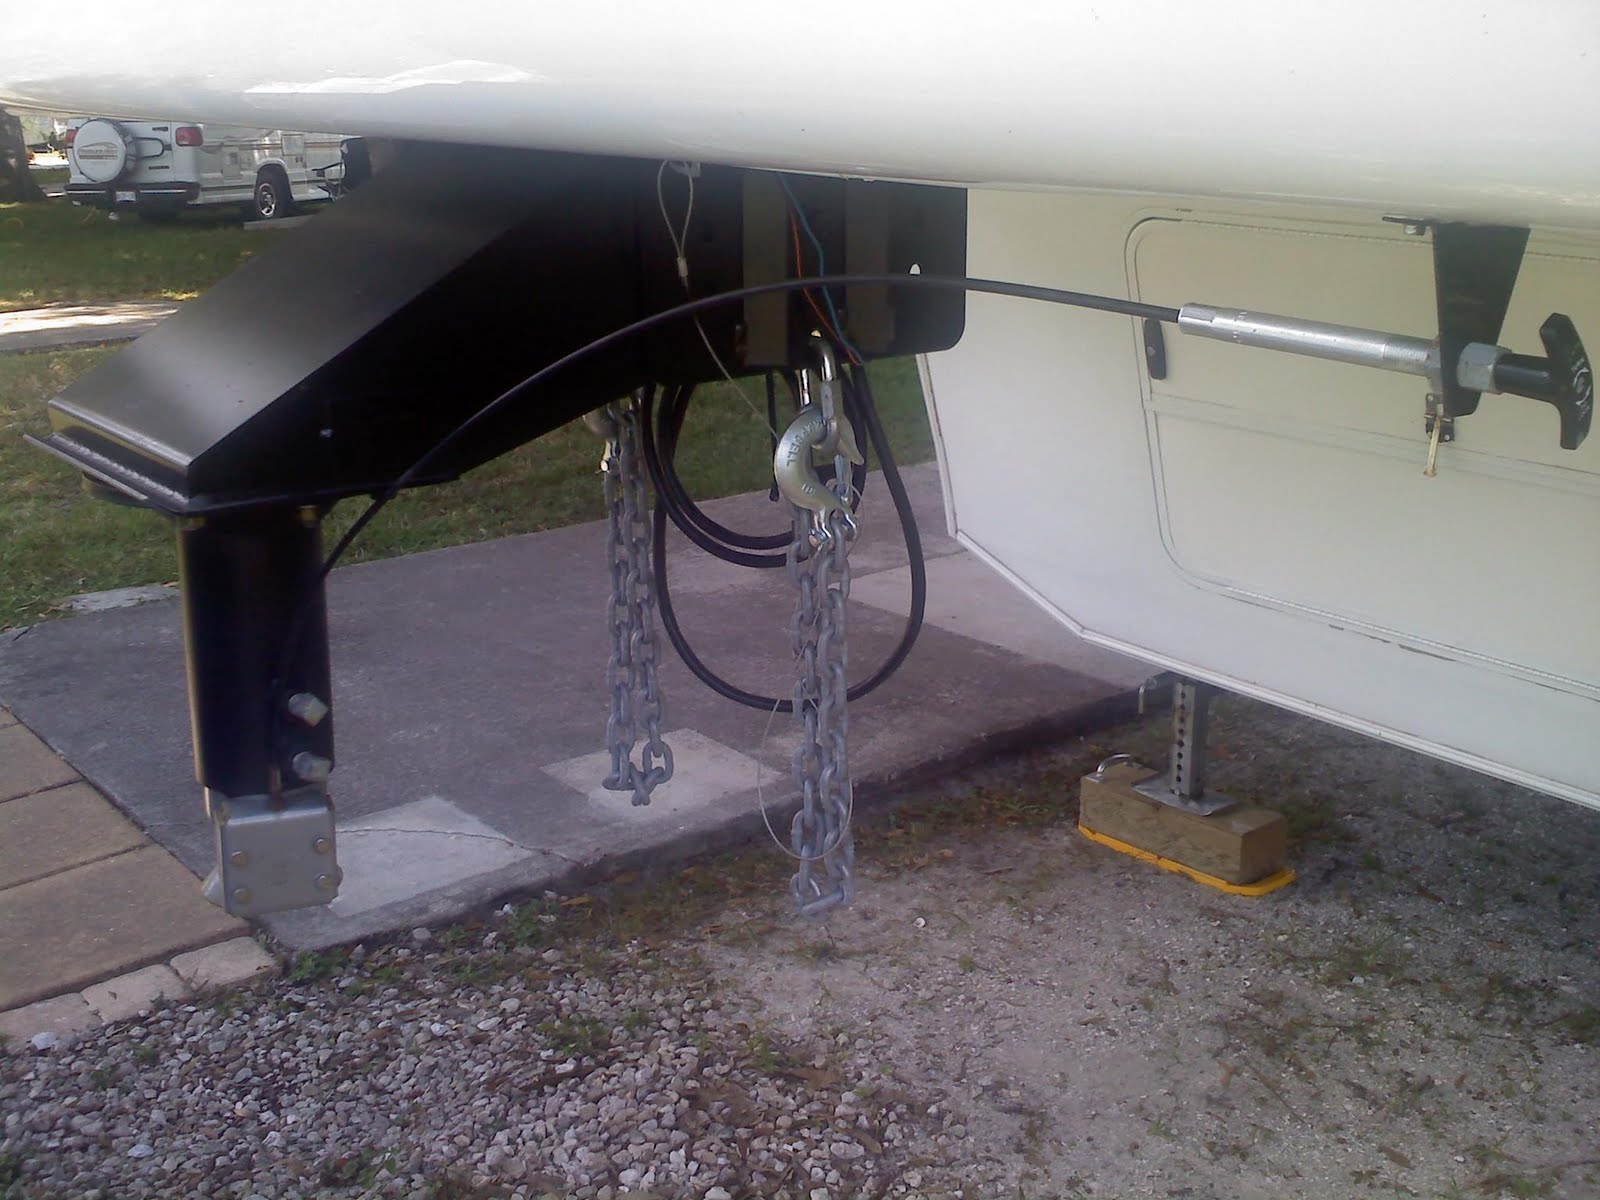 RVing with a Beagle Our Gooseneck Hitch